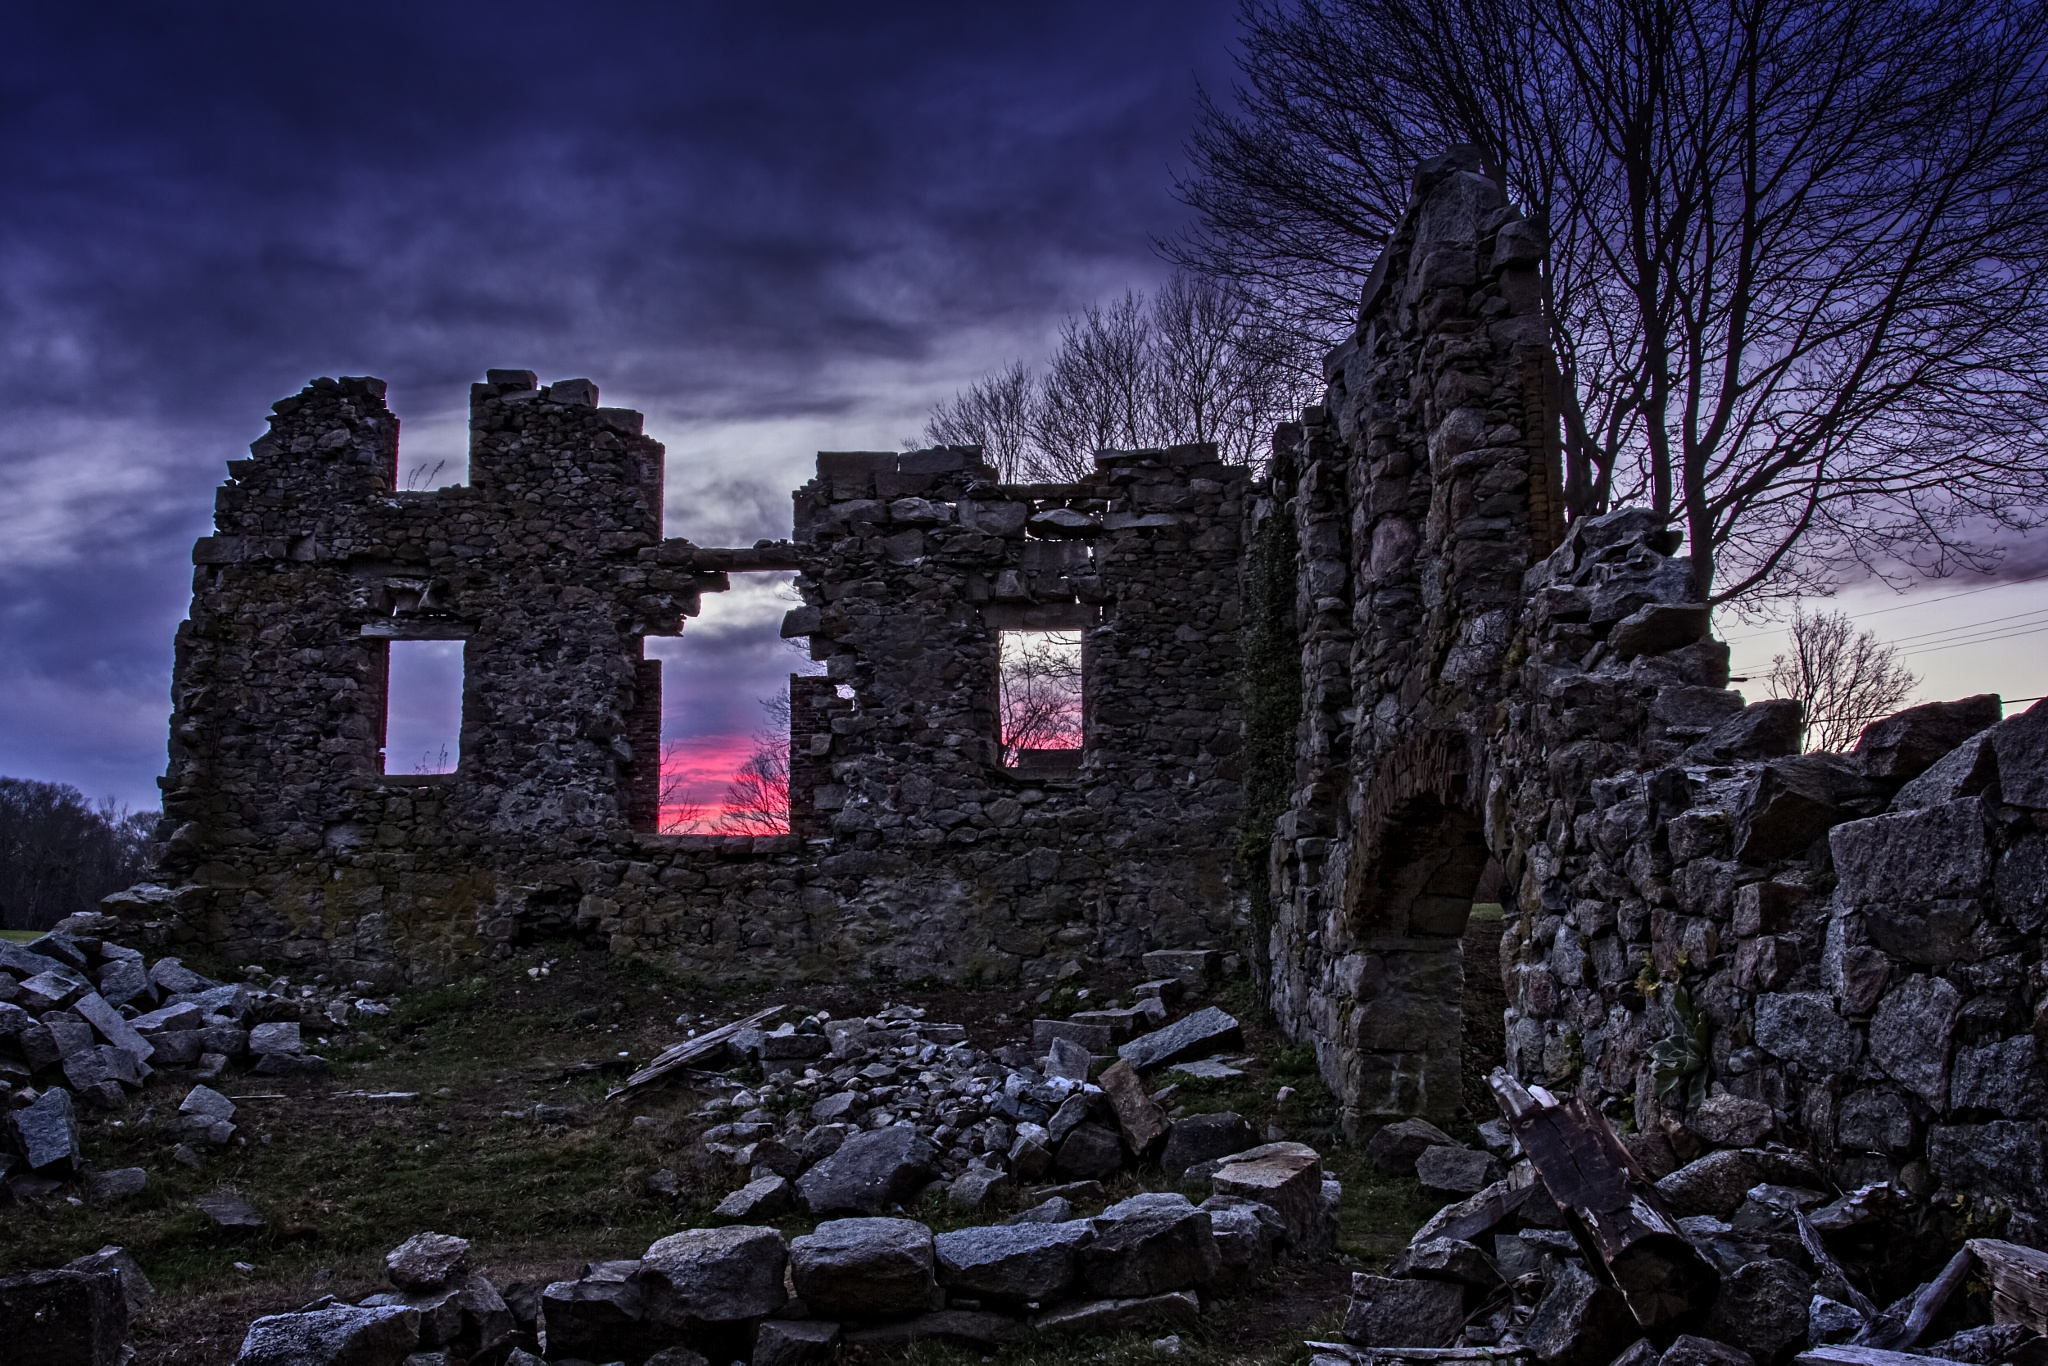 Sunset at Whites Factory ruins by almartinez